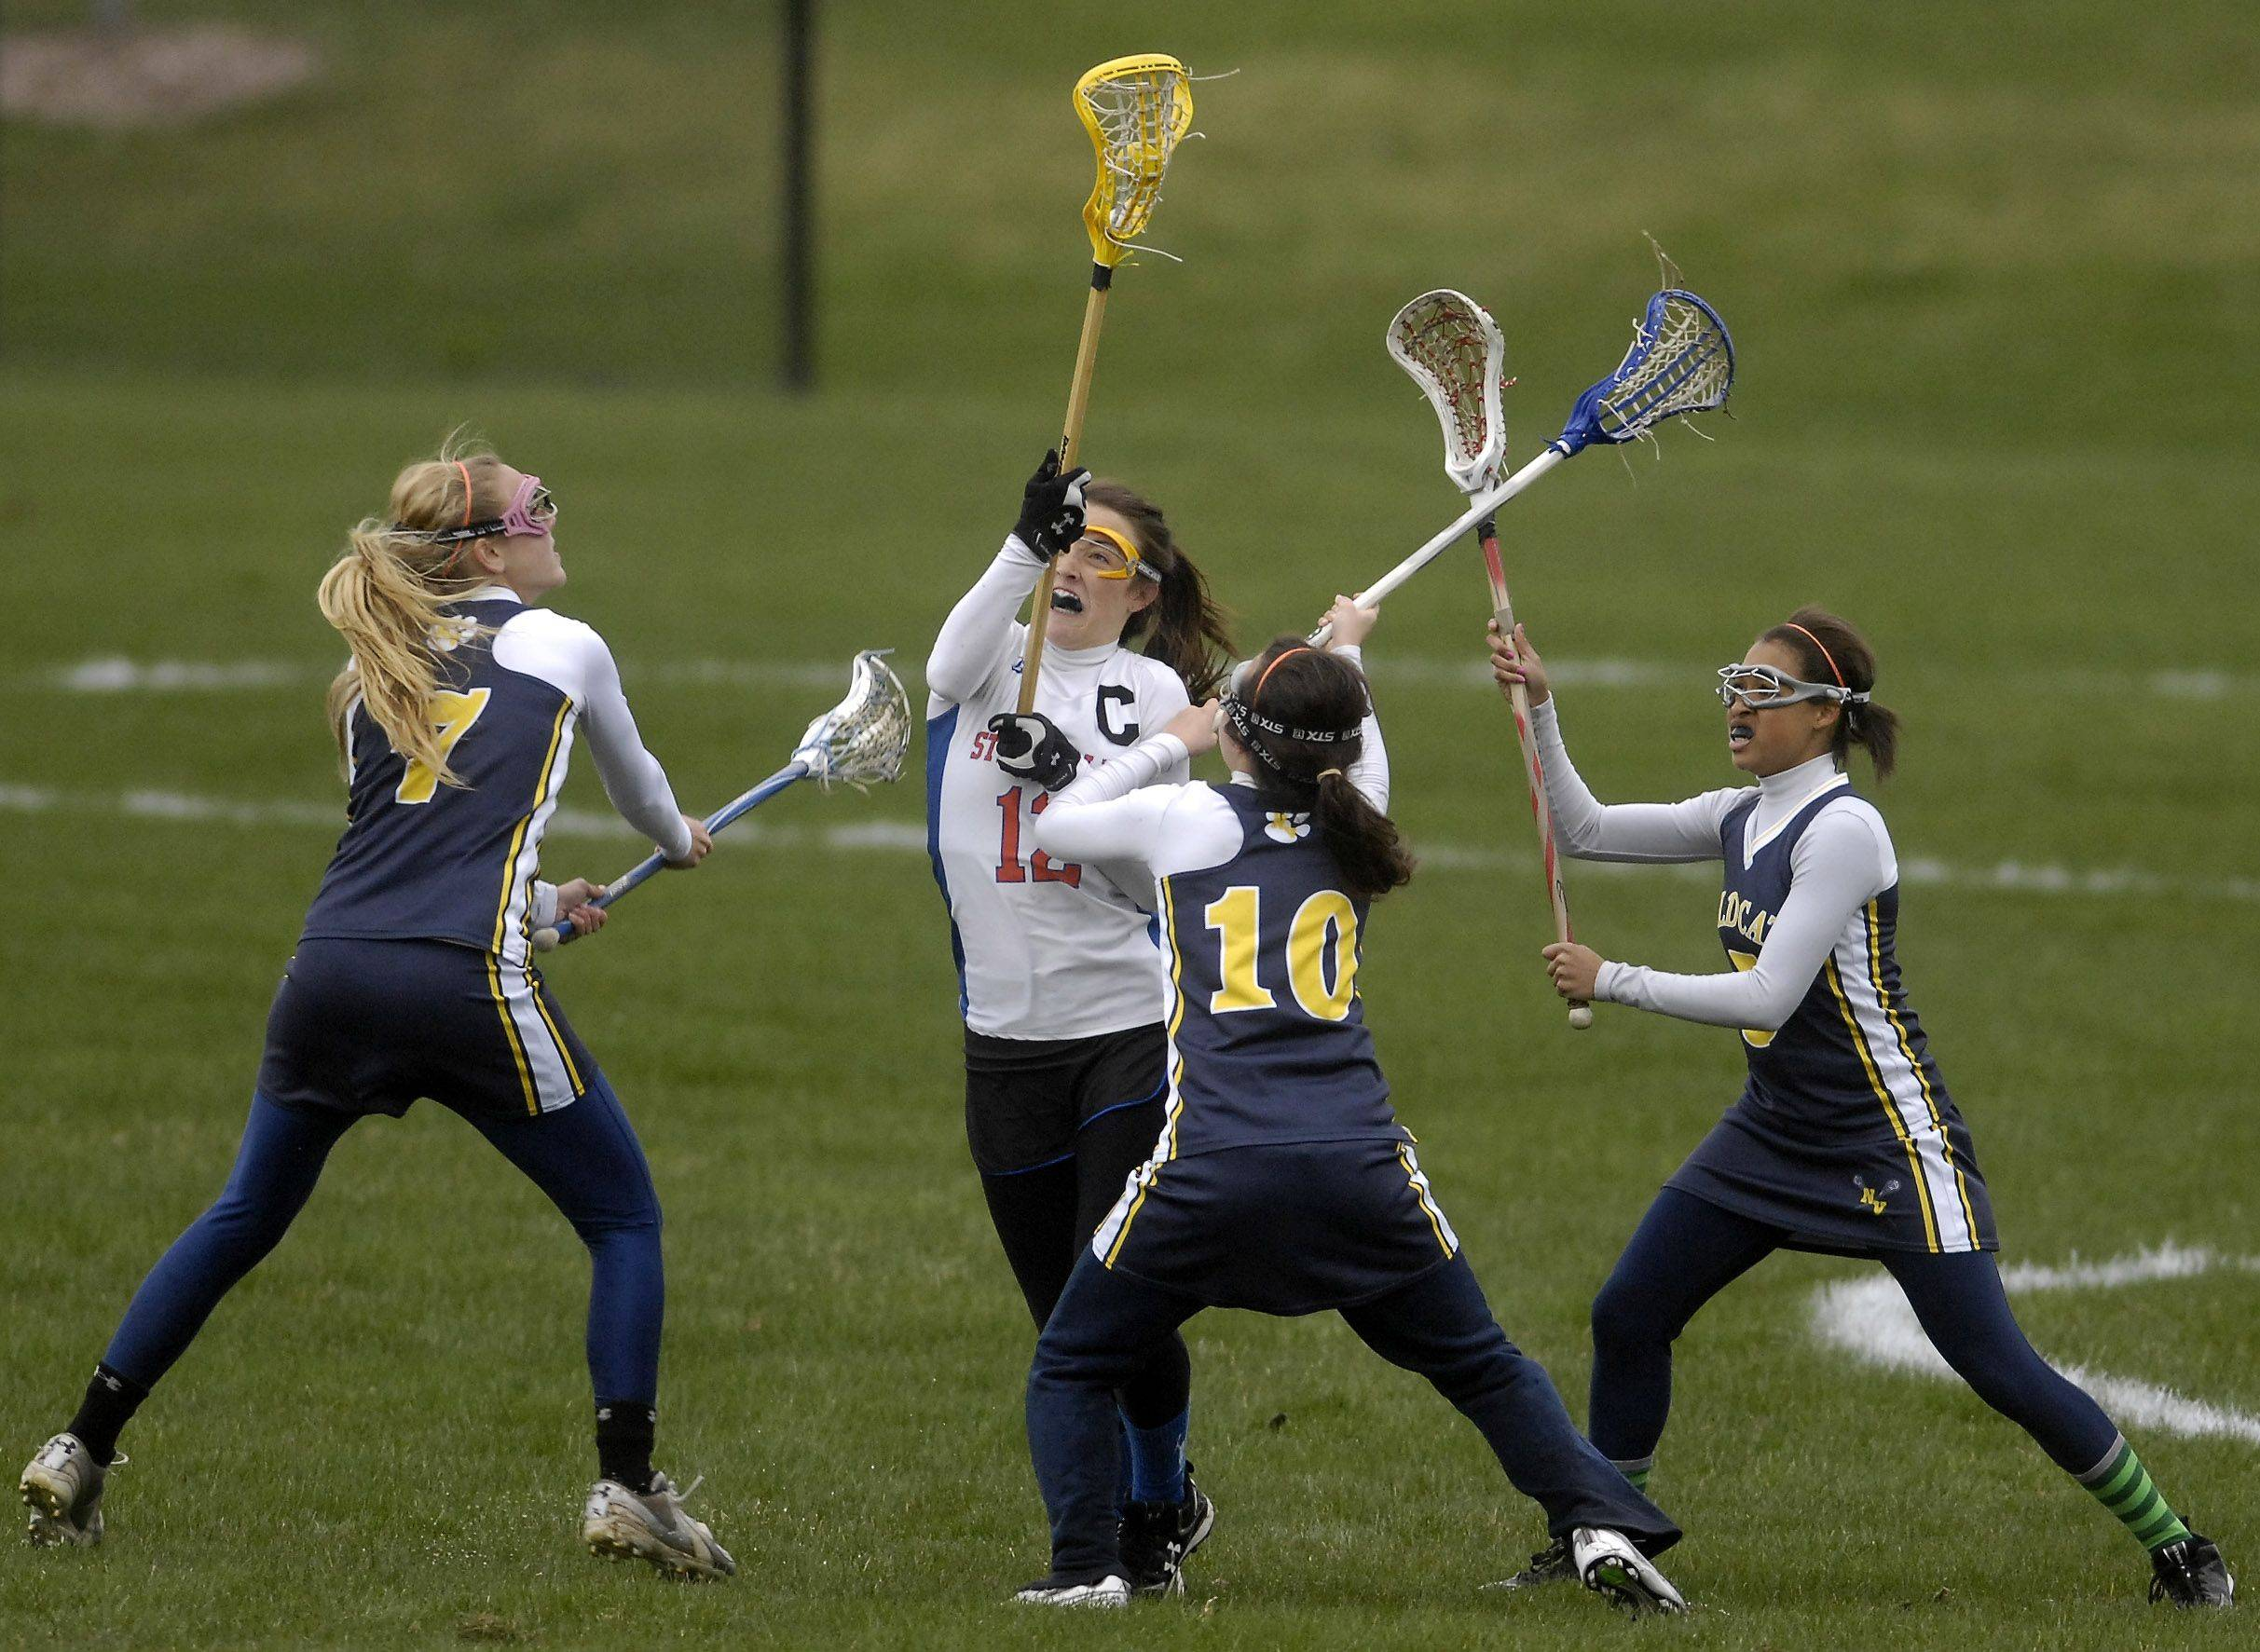 Meghan Brady of the St. Charles Co-op team slices through a trio of Neuqua Valley defenders during girls lacrosse action in St. Charles Thursday, April 21, 2011.